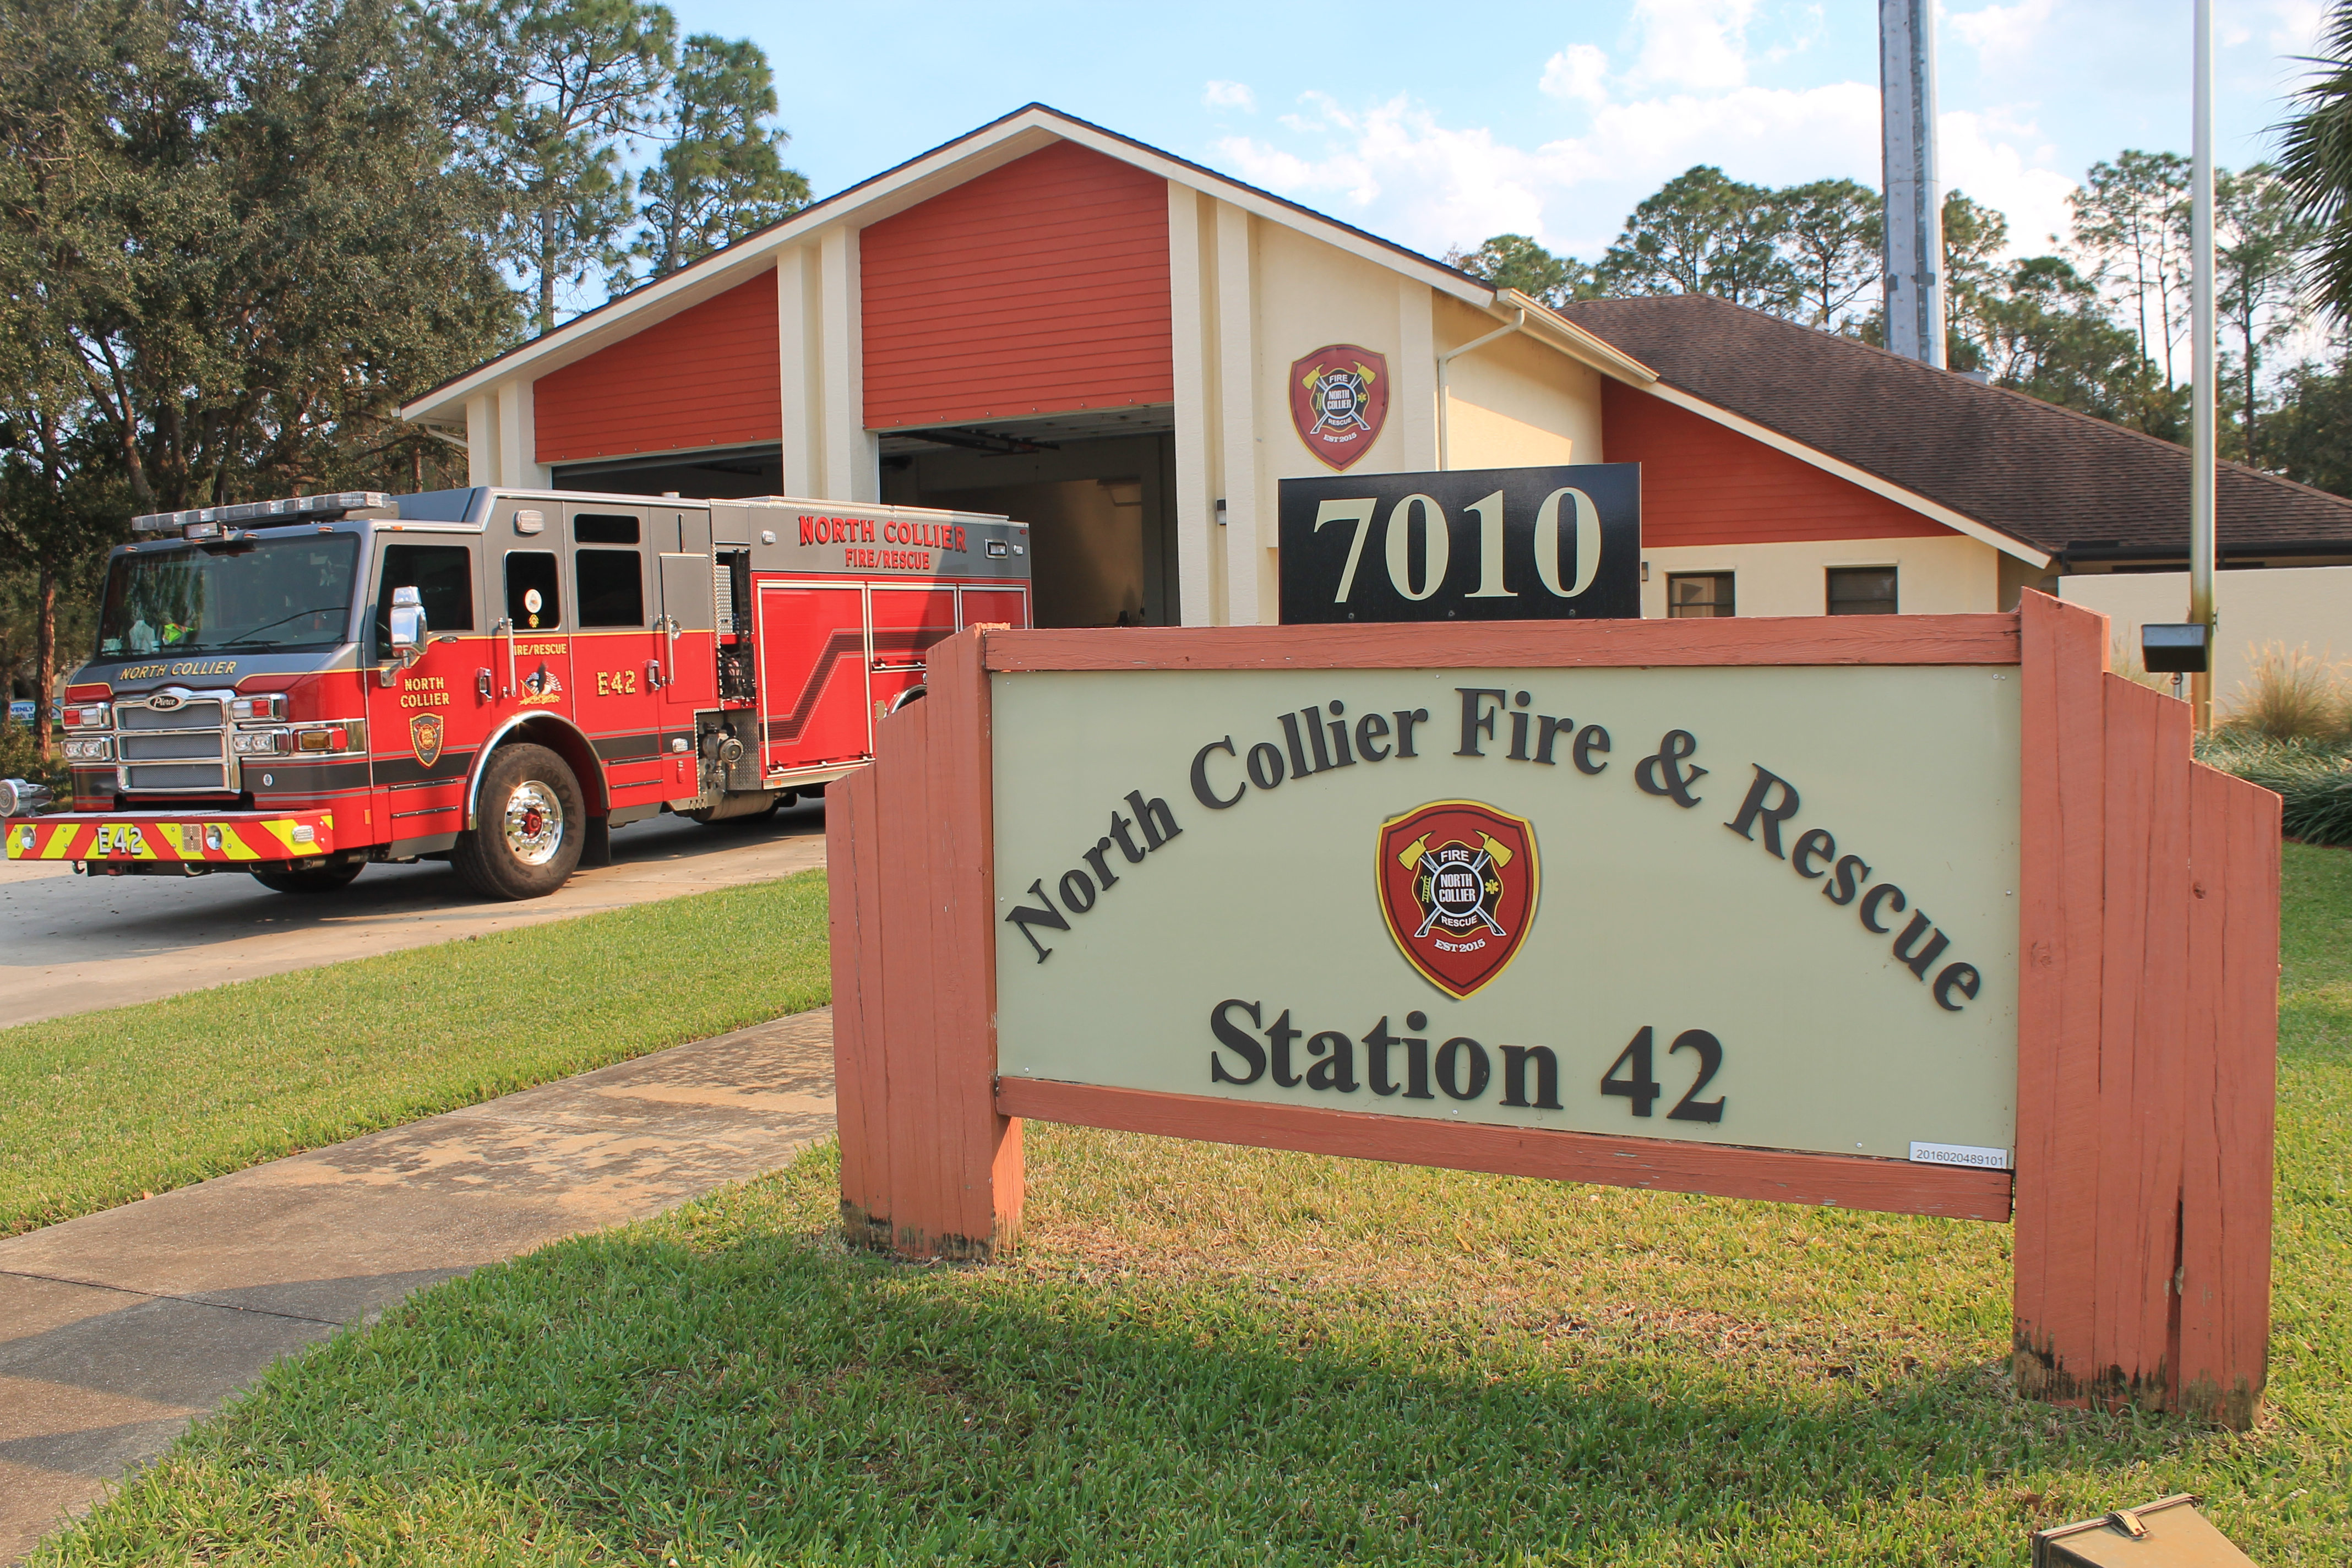 North Collier Fire & Rescue Station 42